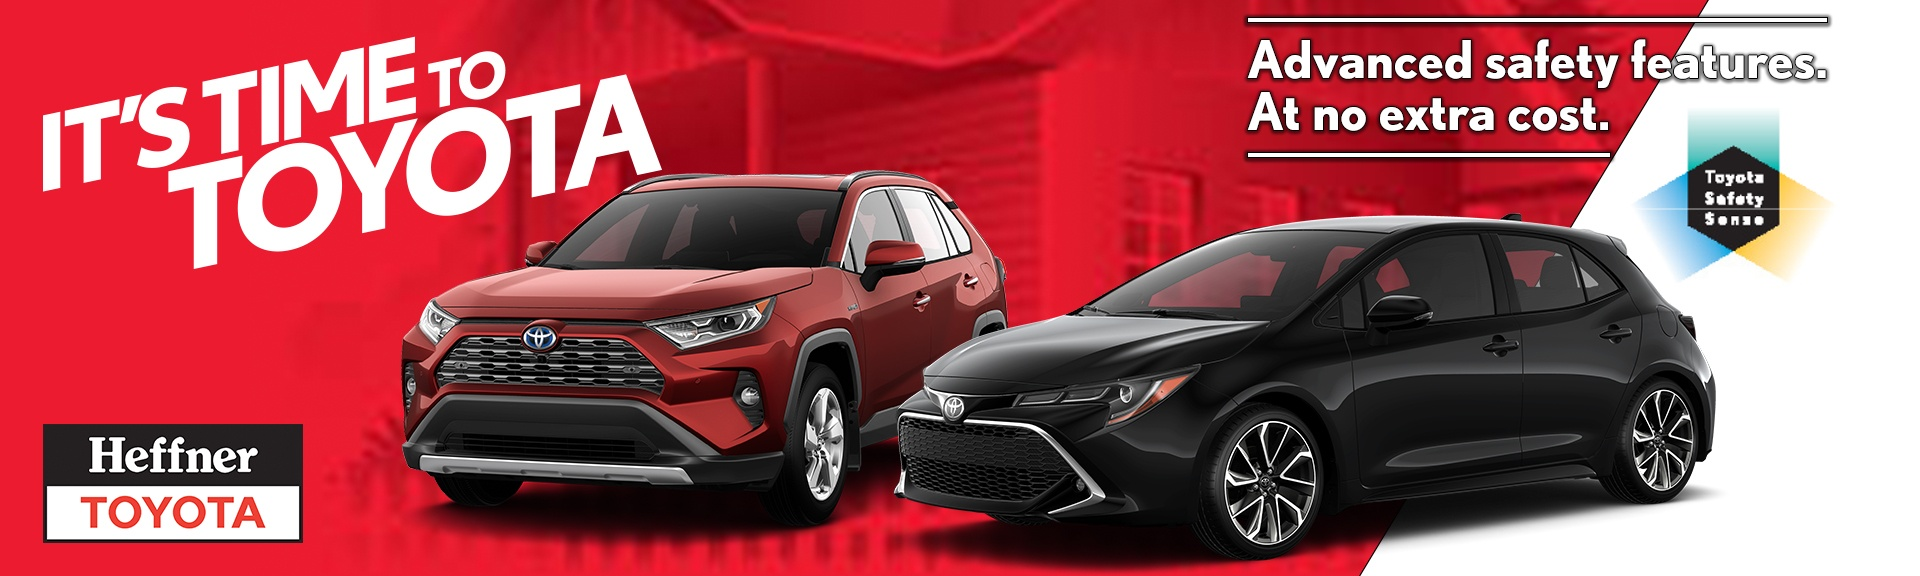 It's Time to Toyota at Heffner Toyota.